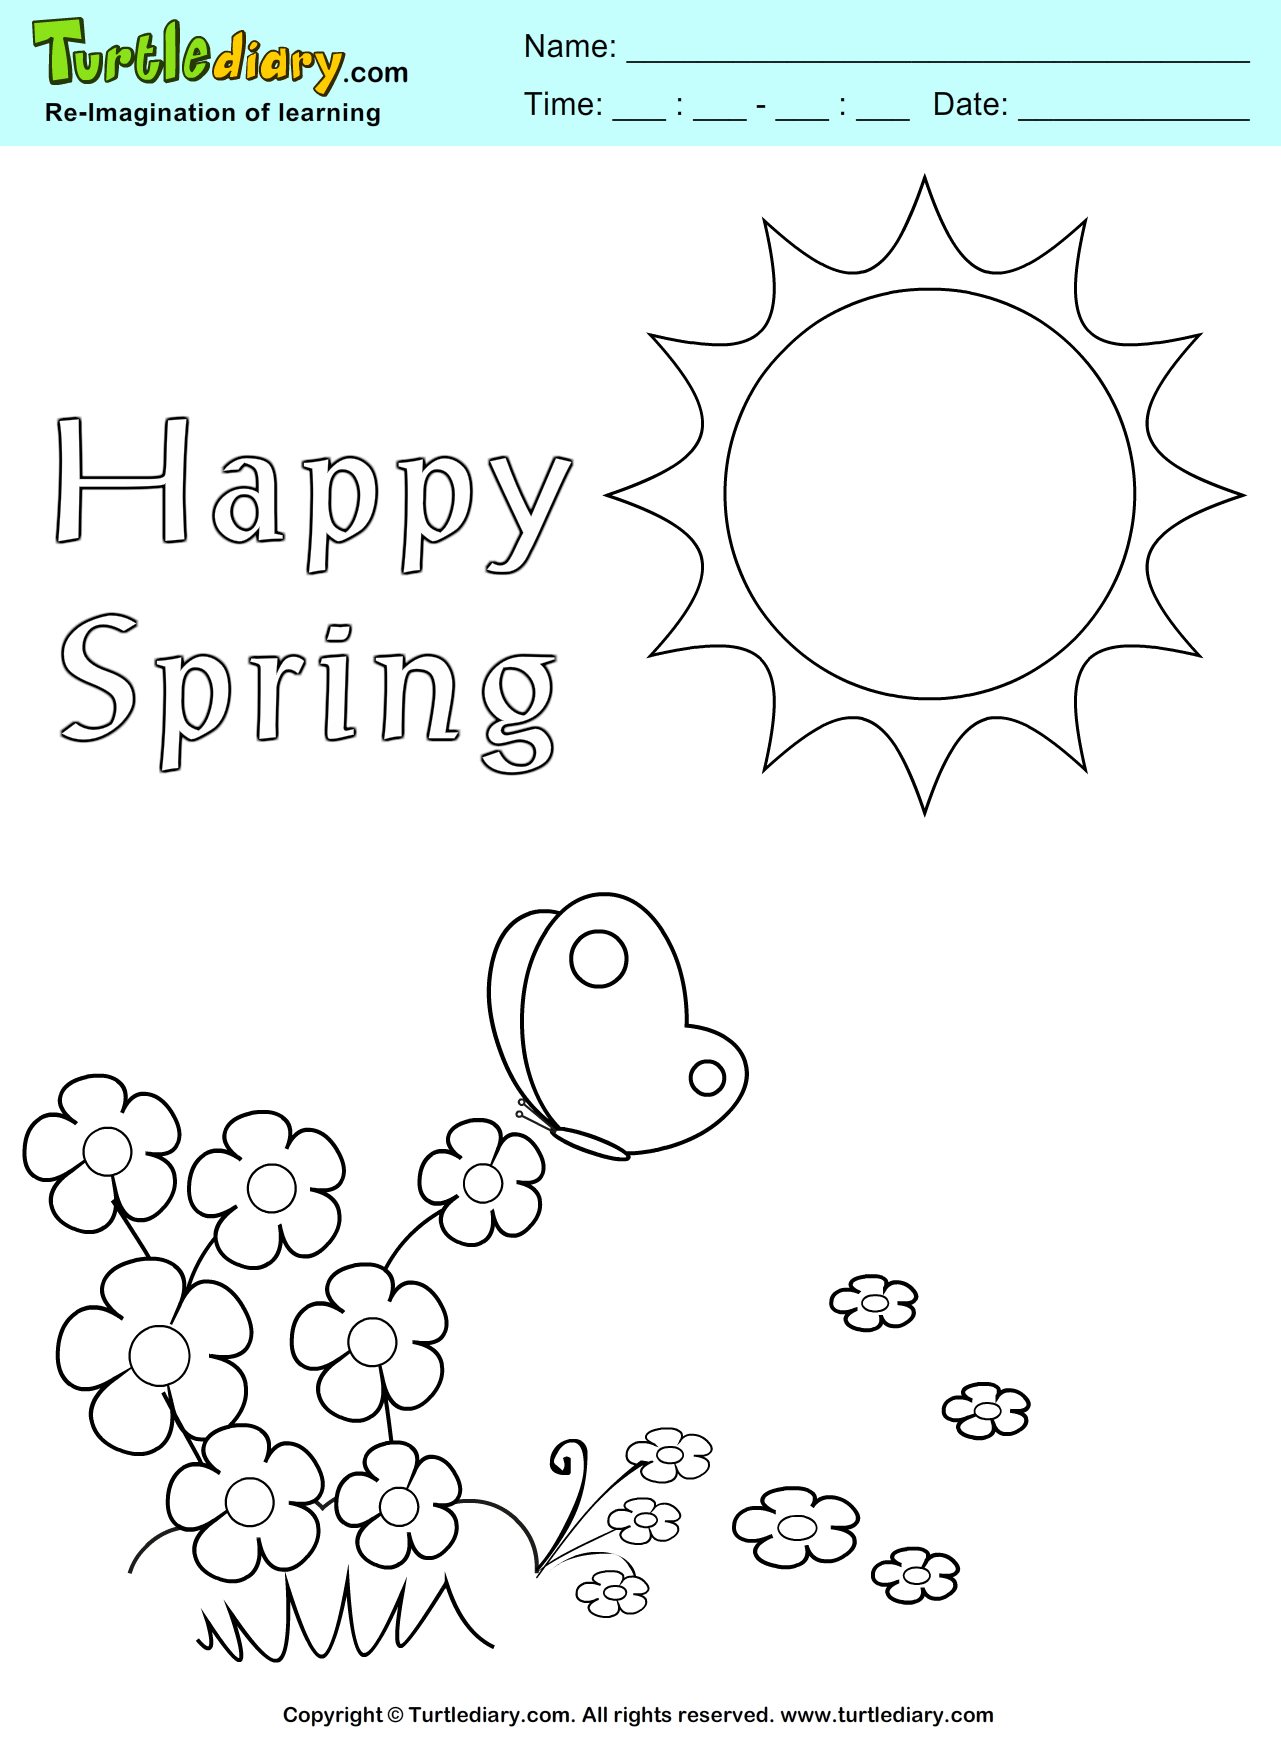 Happy Spring Coloring Page Coloring Sheet Spring Coloring Pages Coloring Pages Happy Spring